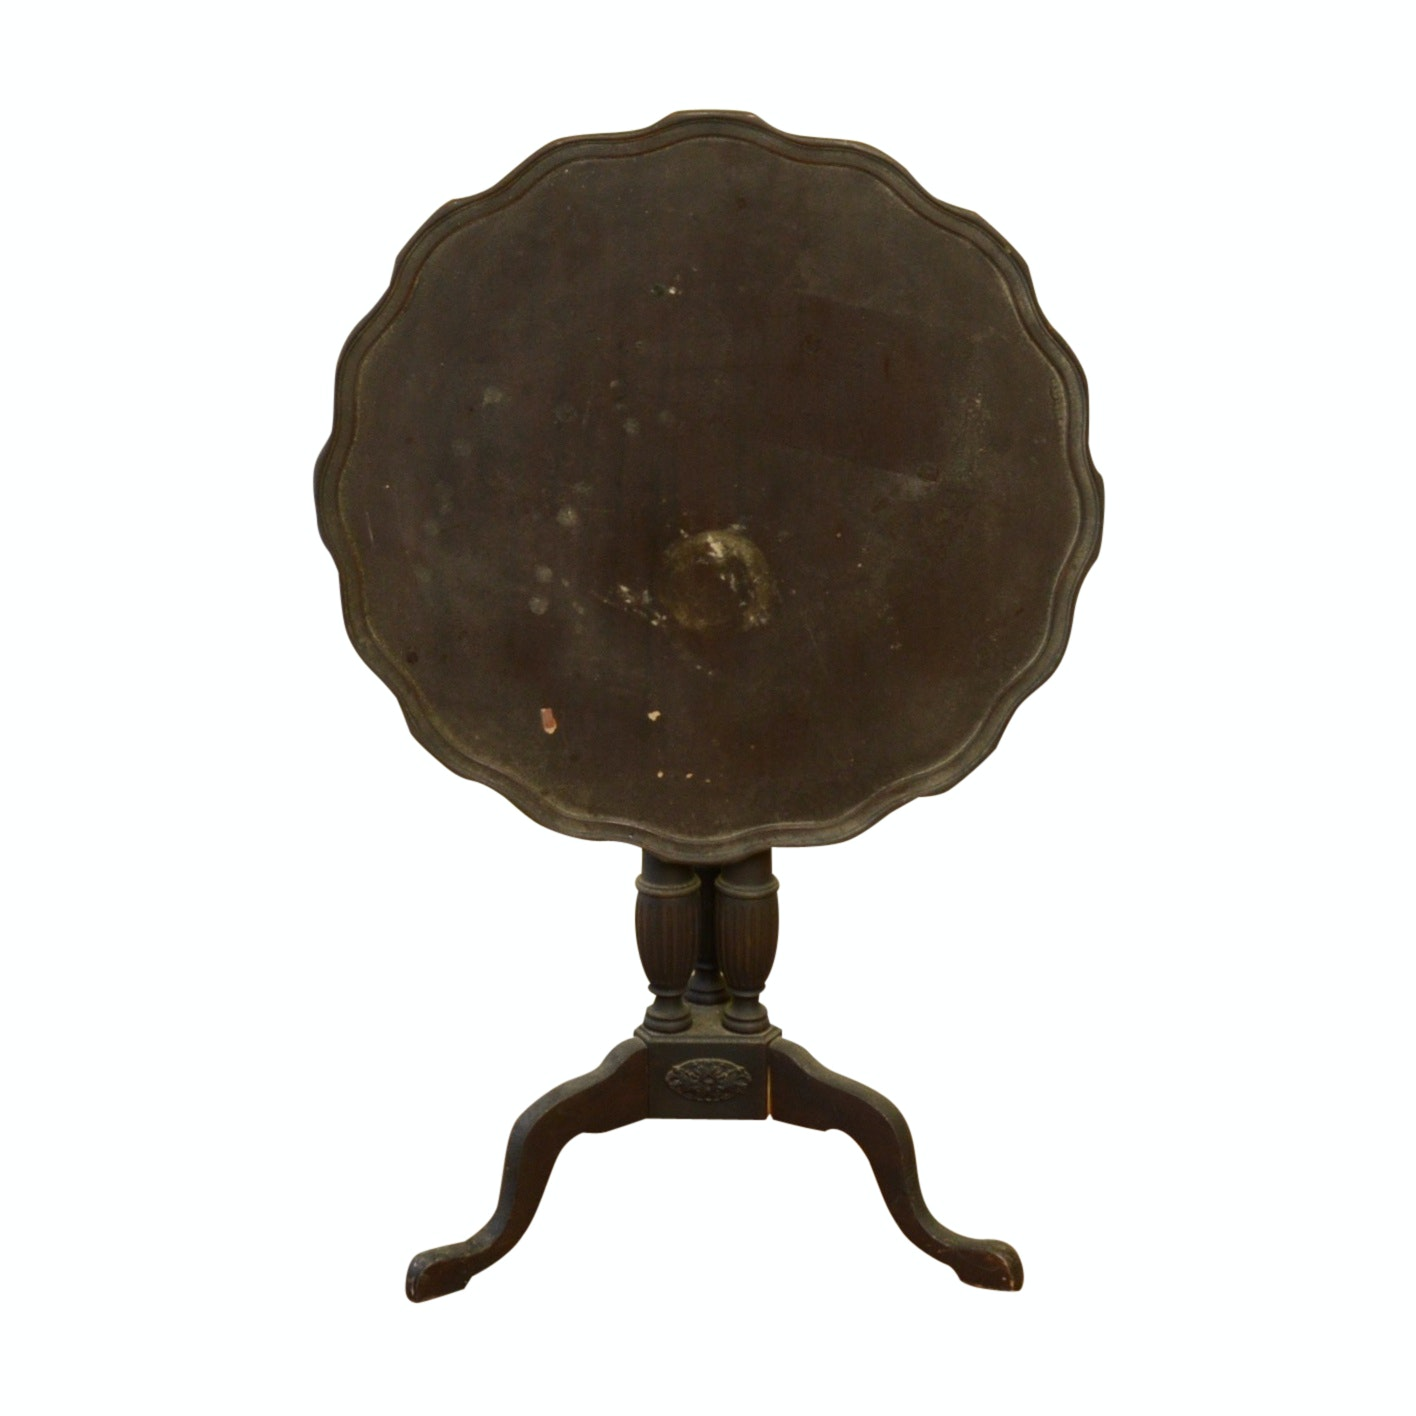 Transitional Mahogany Tilt Top Table, Early to Mid 20th Century